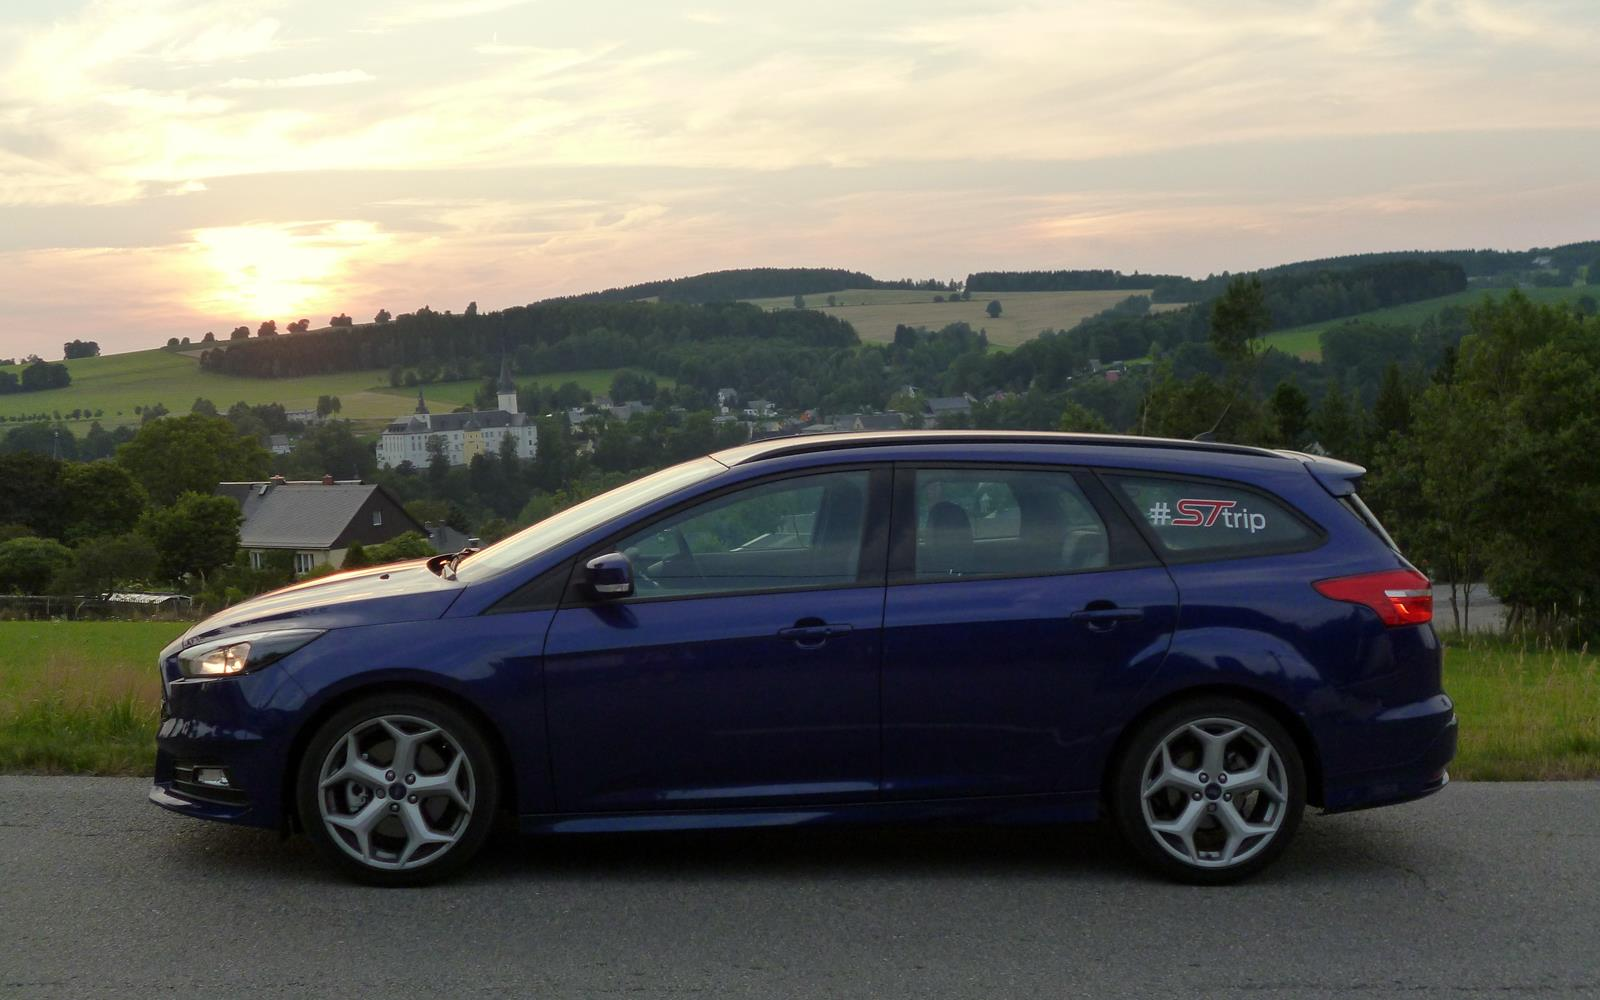 Ford Focus ST Road Trip with Jonny Edge 2015 10